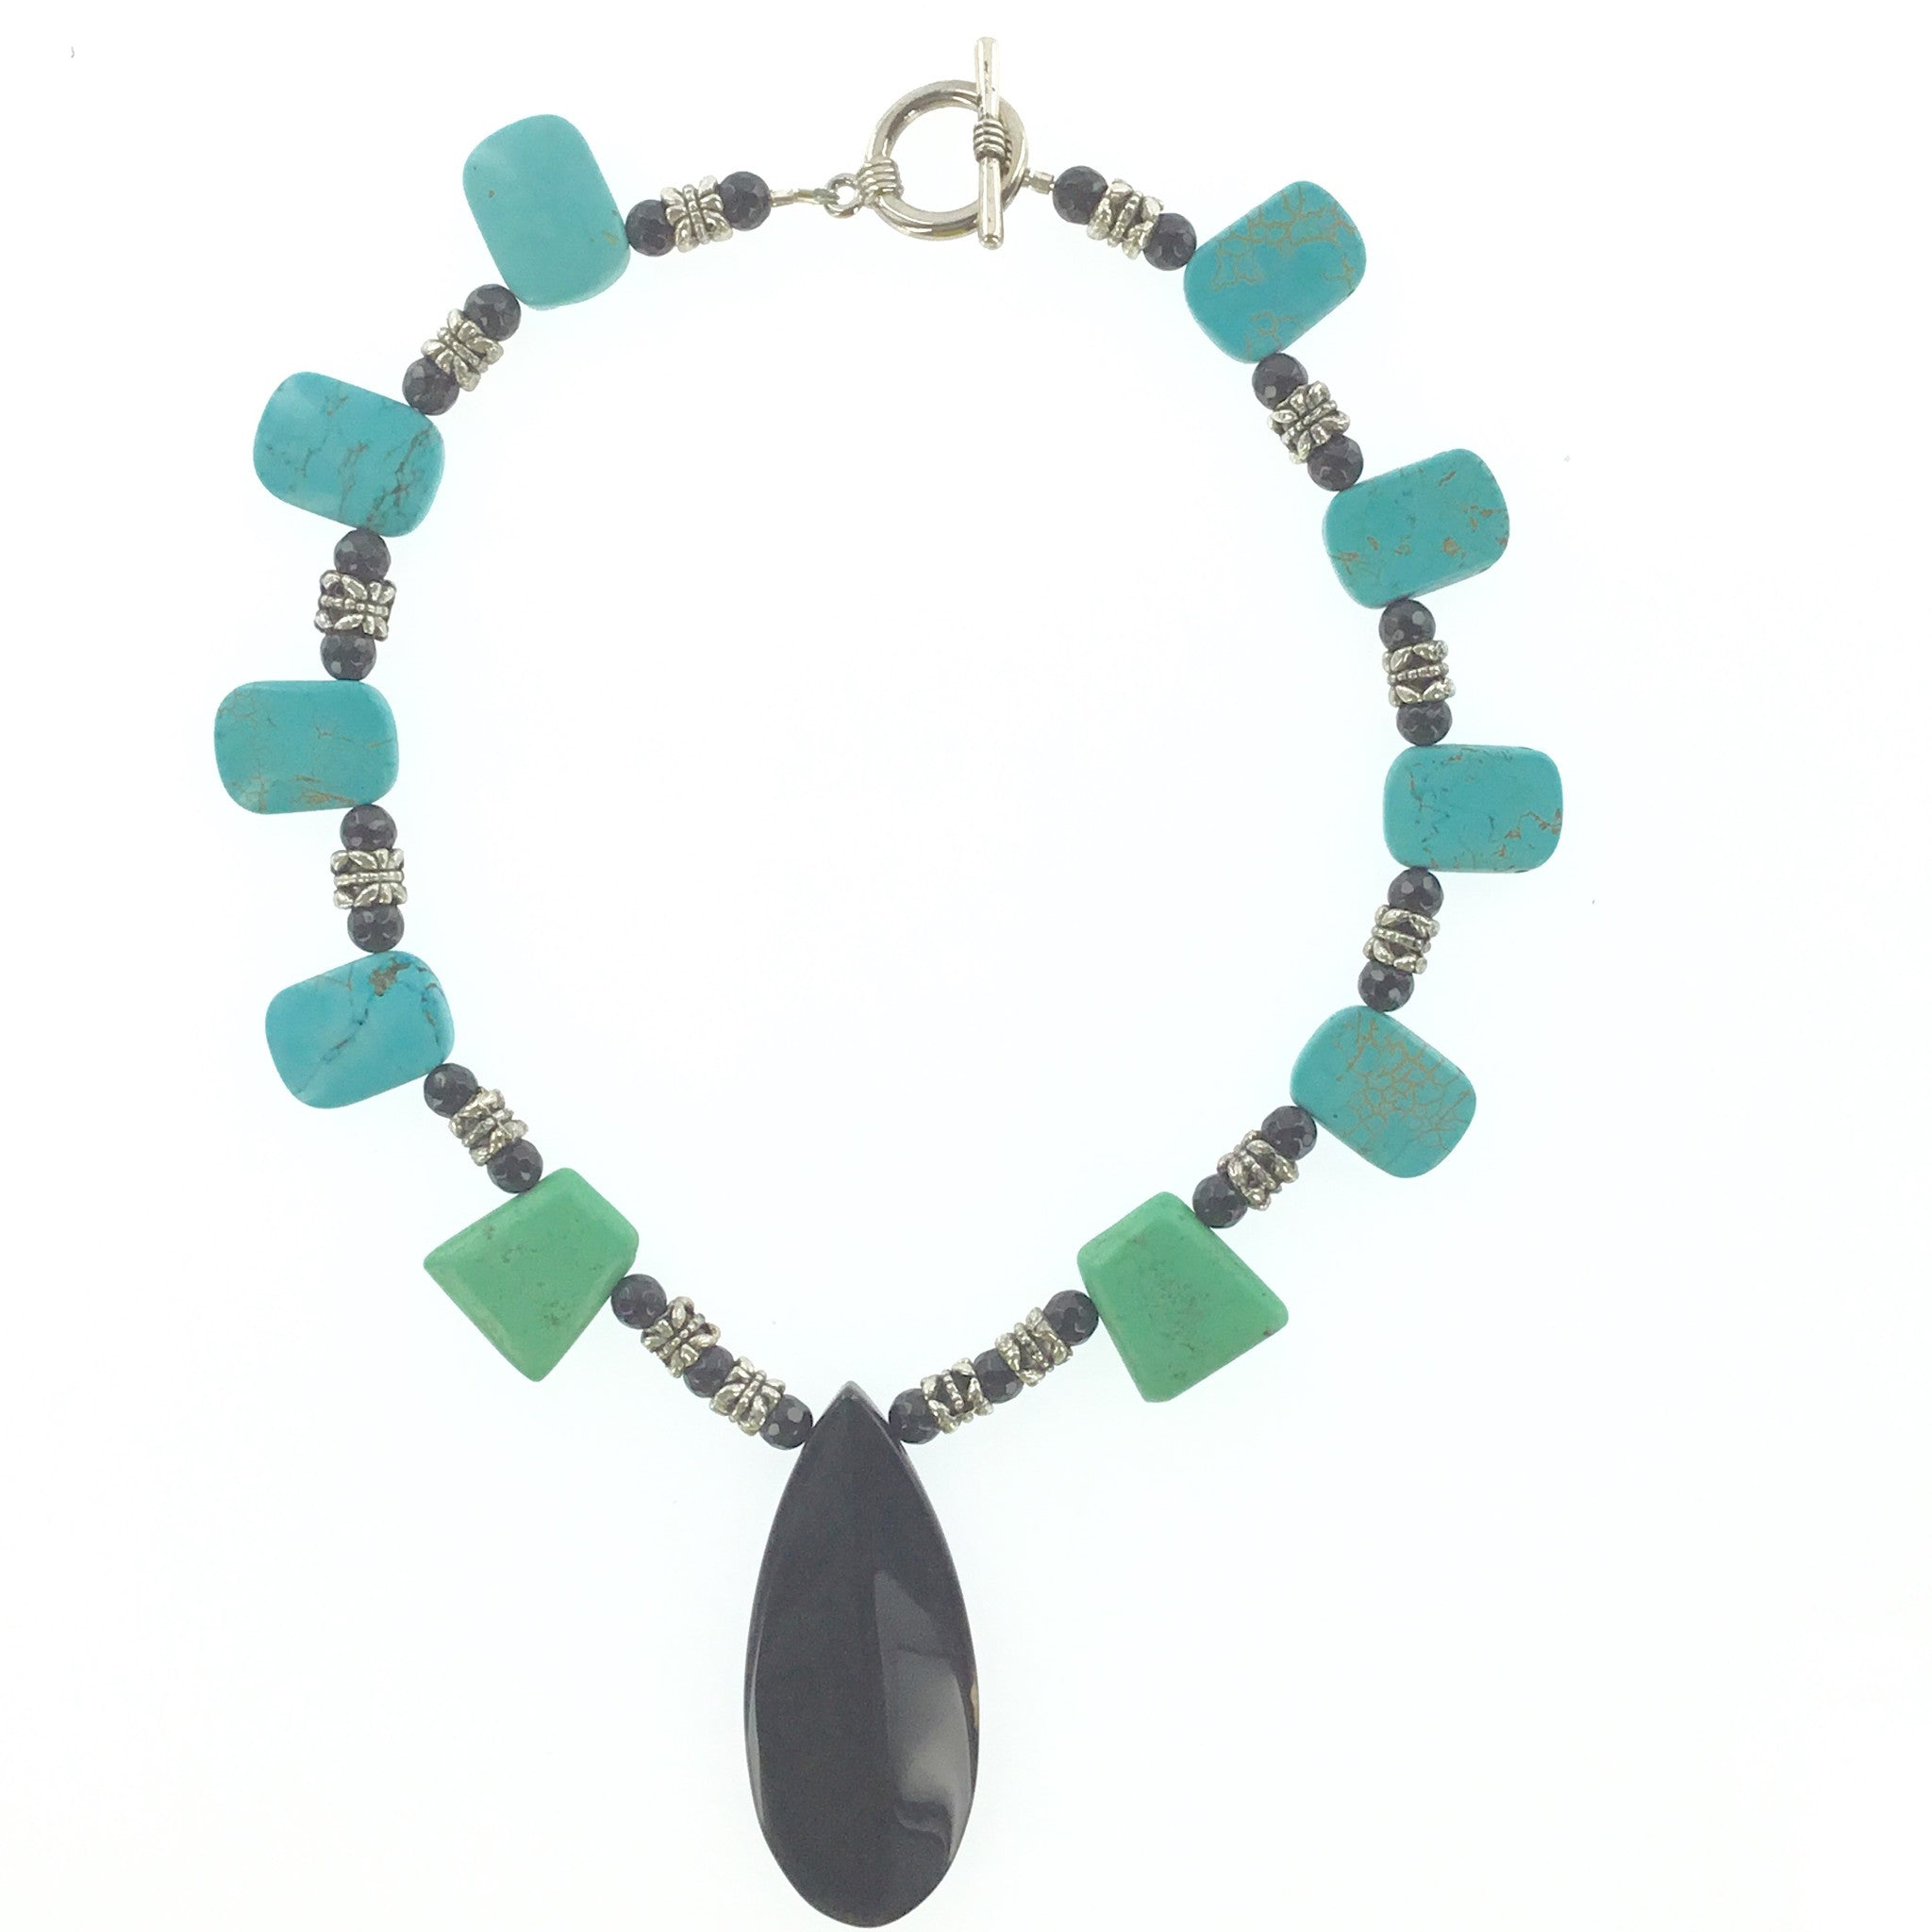 Turquoise and Black Agate Necklace - Real Chic Boutique  - 1